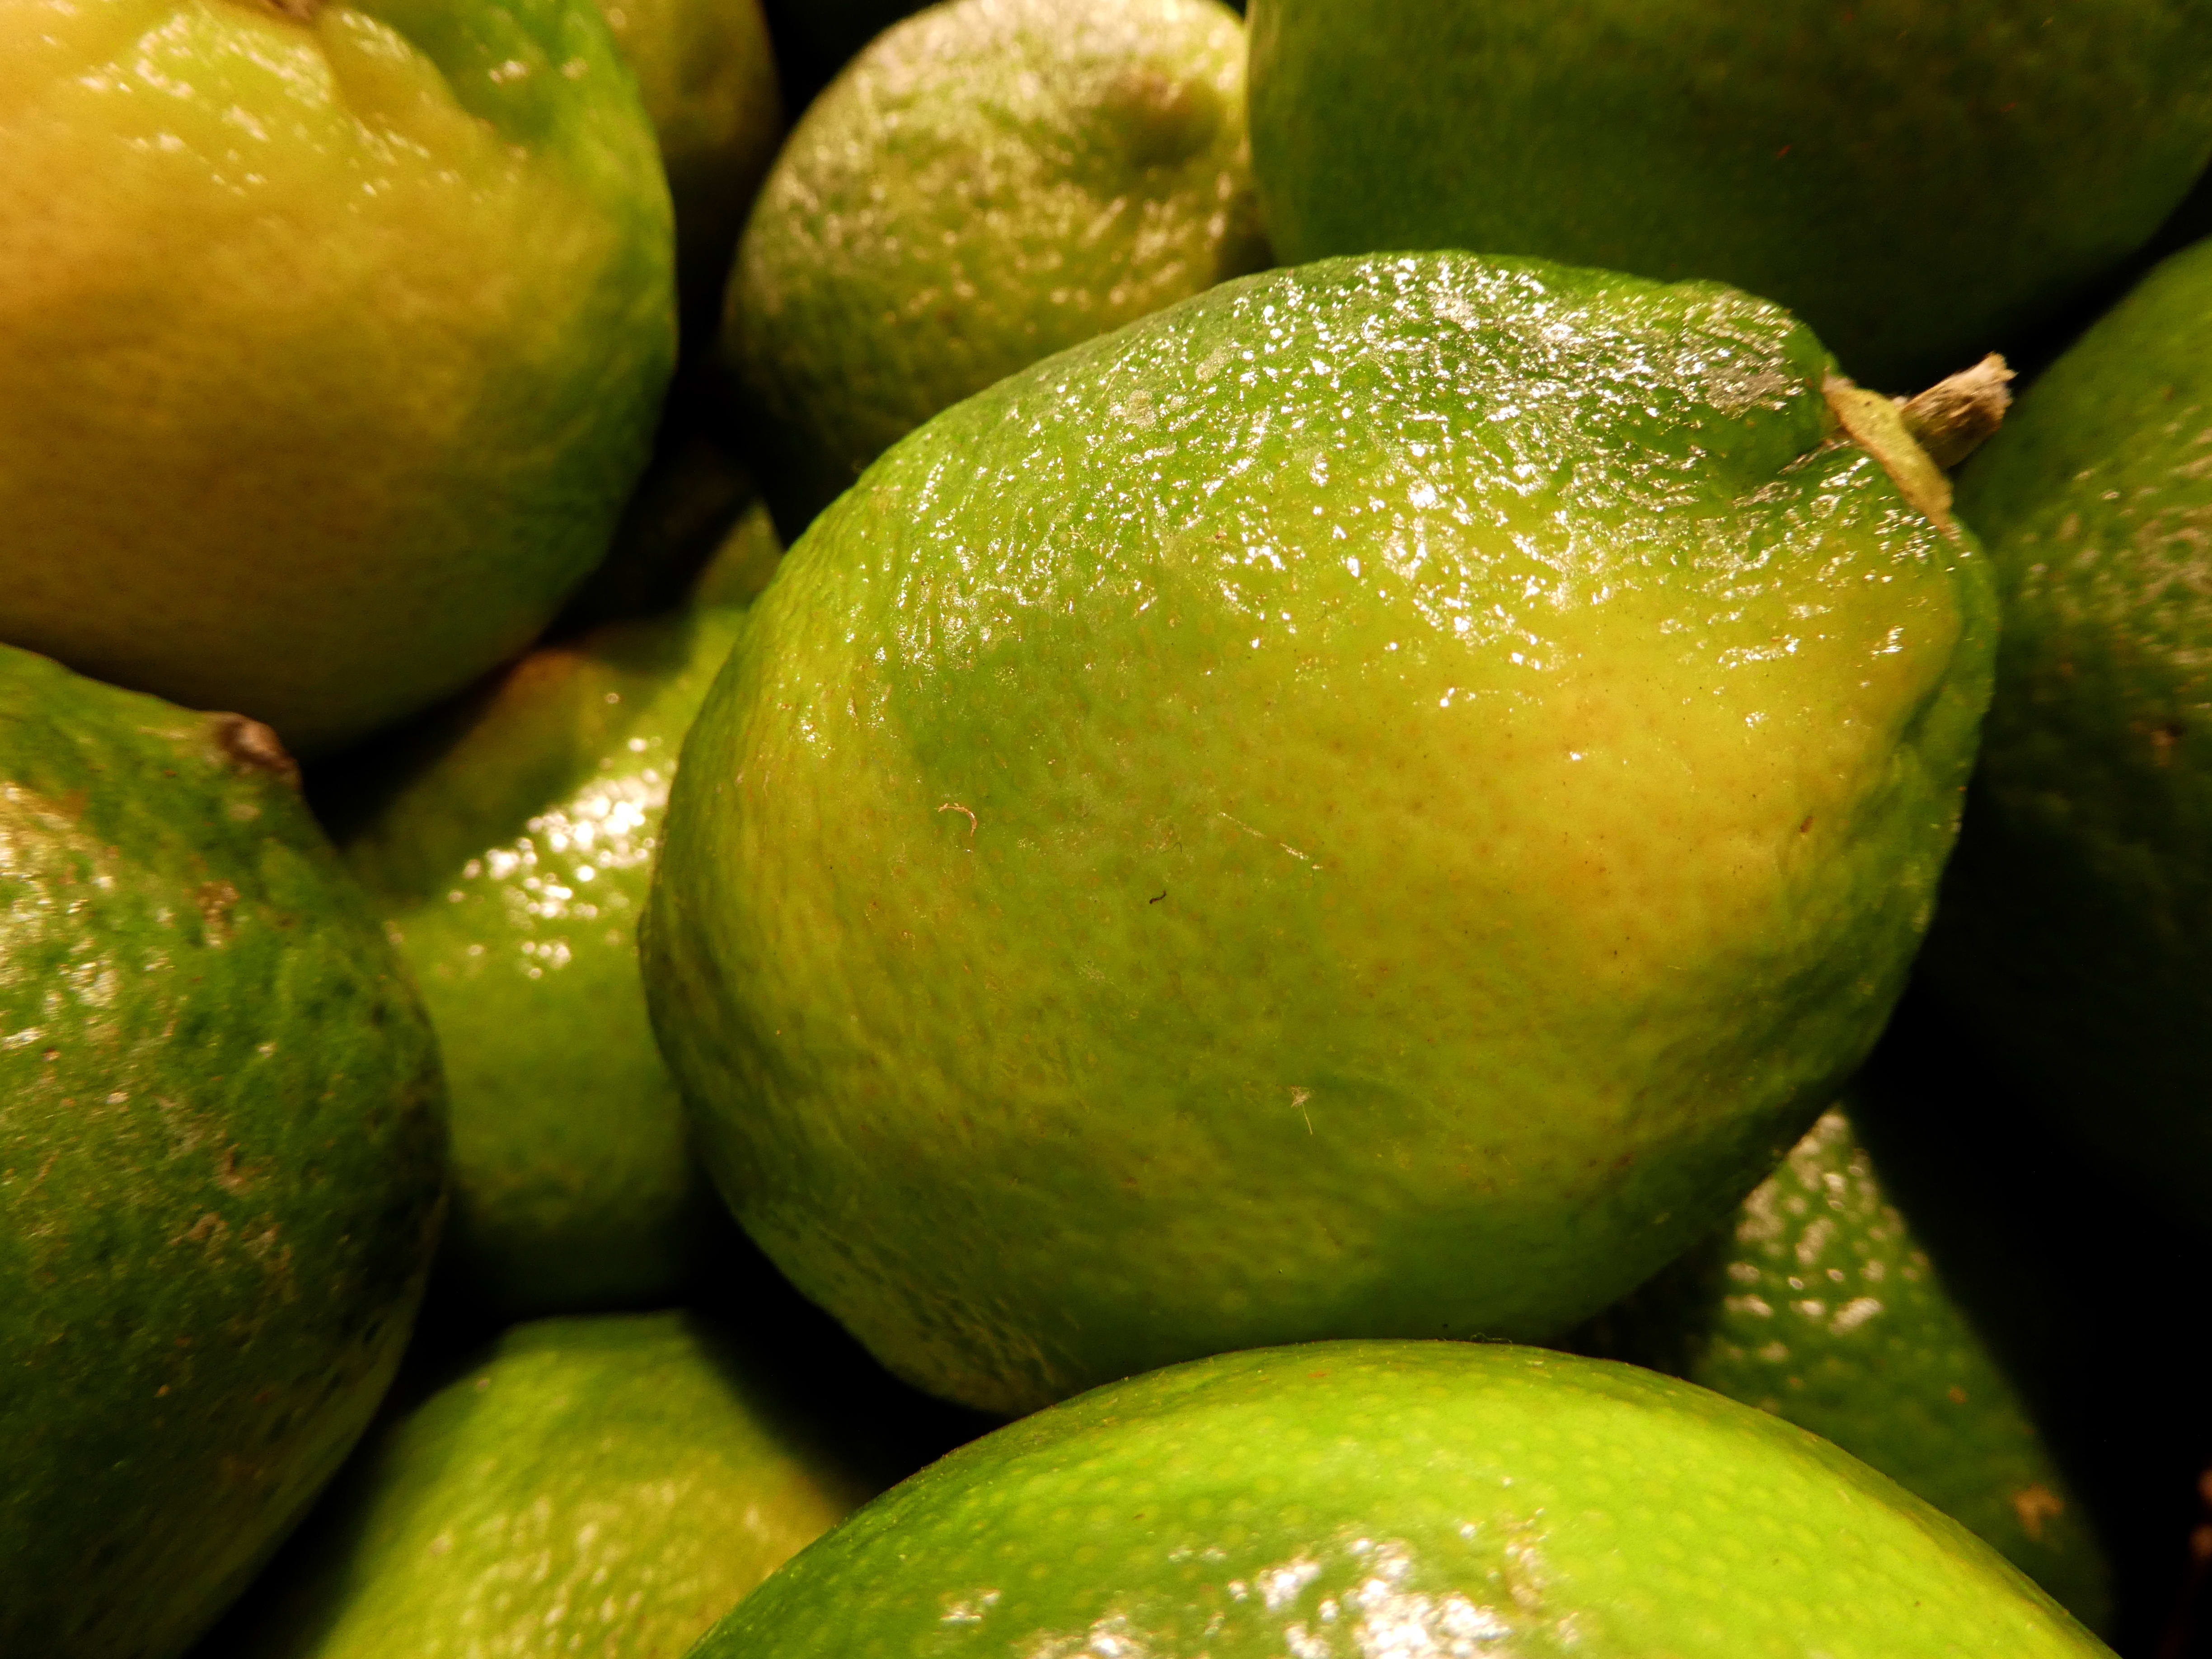 We like the ZS60's white balance, which handles the odd coloration of these limes well.